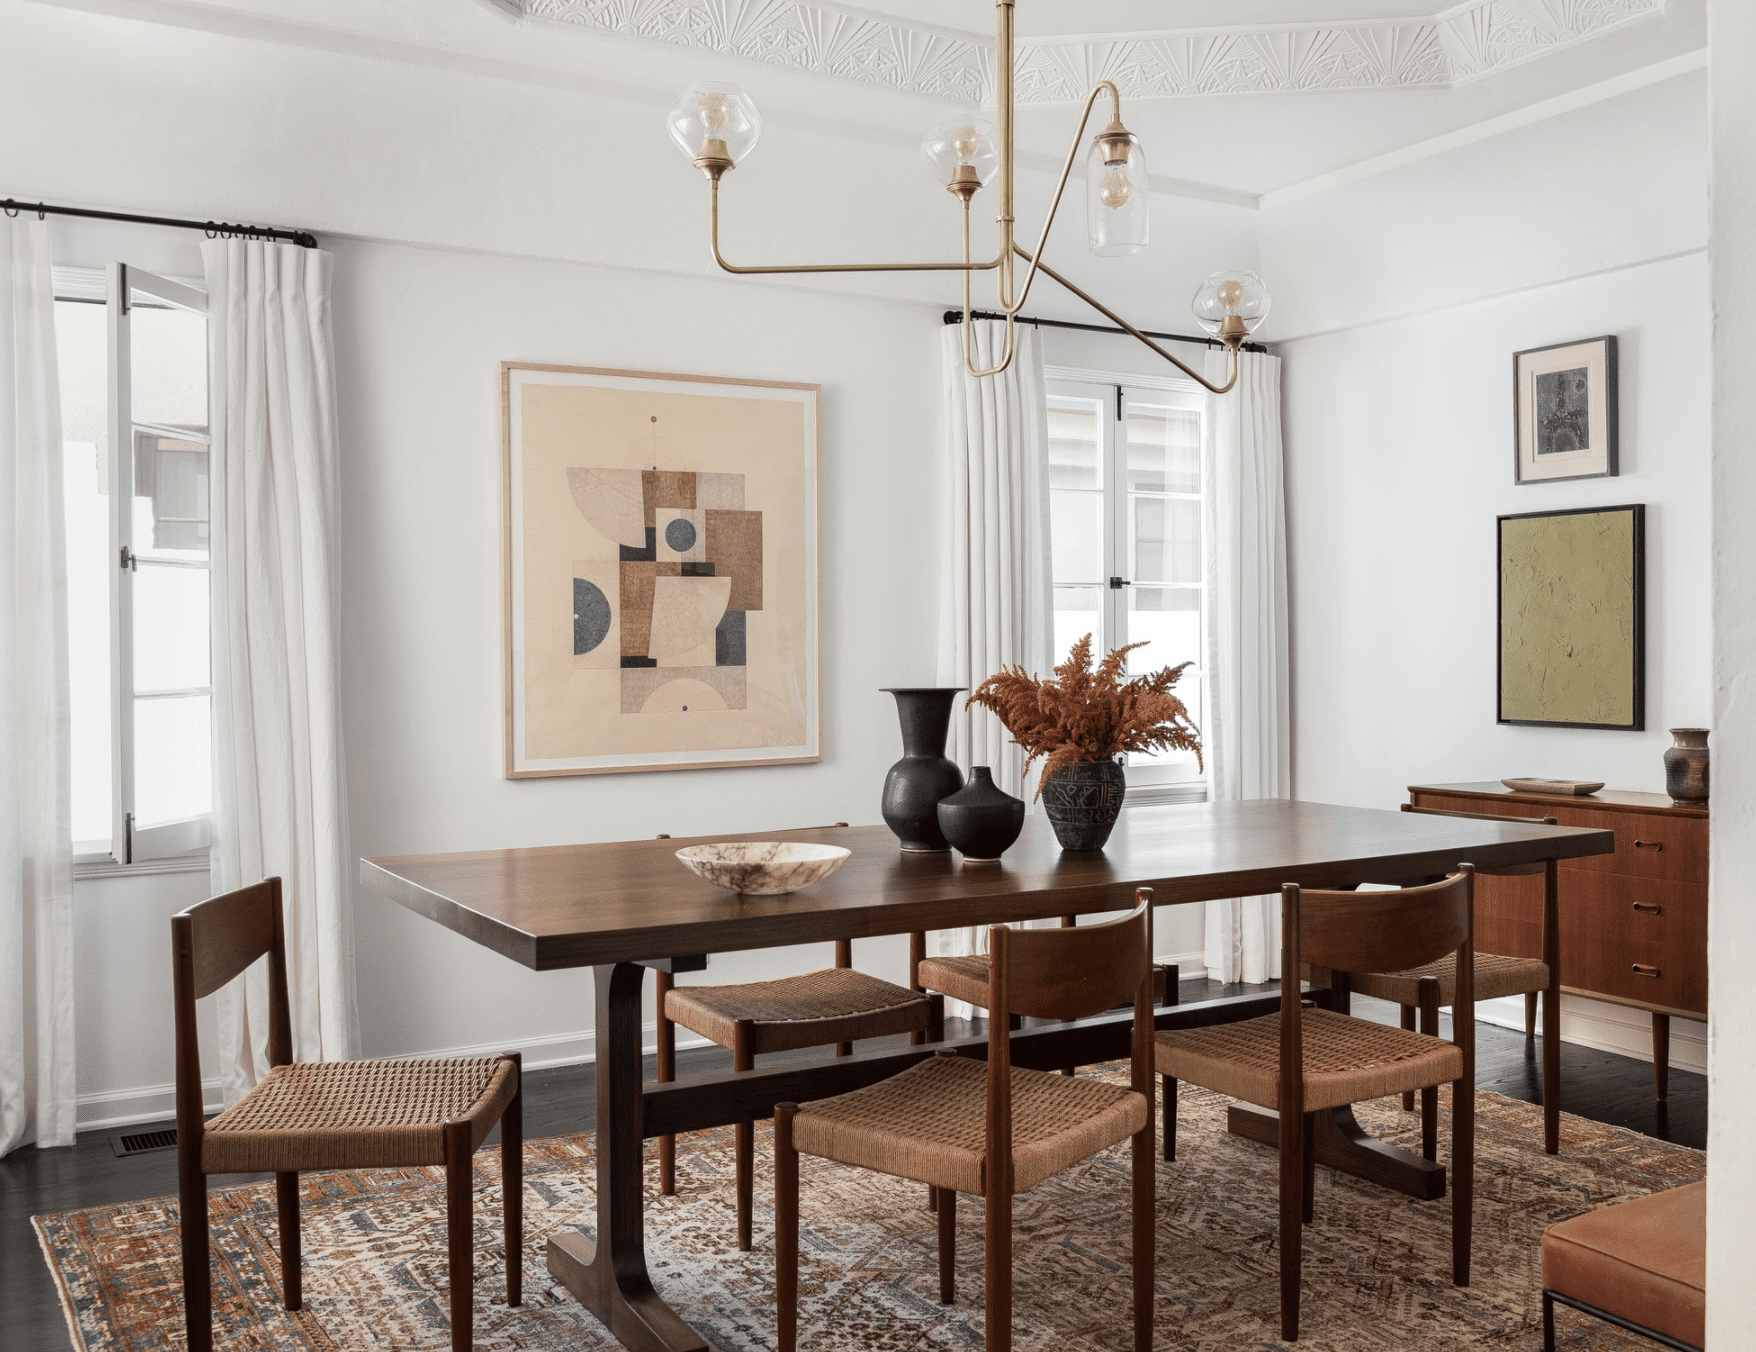 A dining room featuring a work of beige and pink art